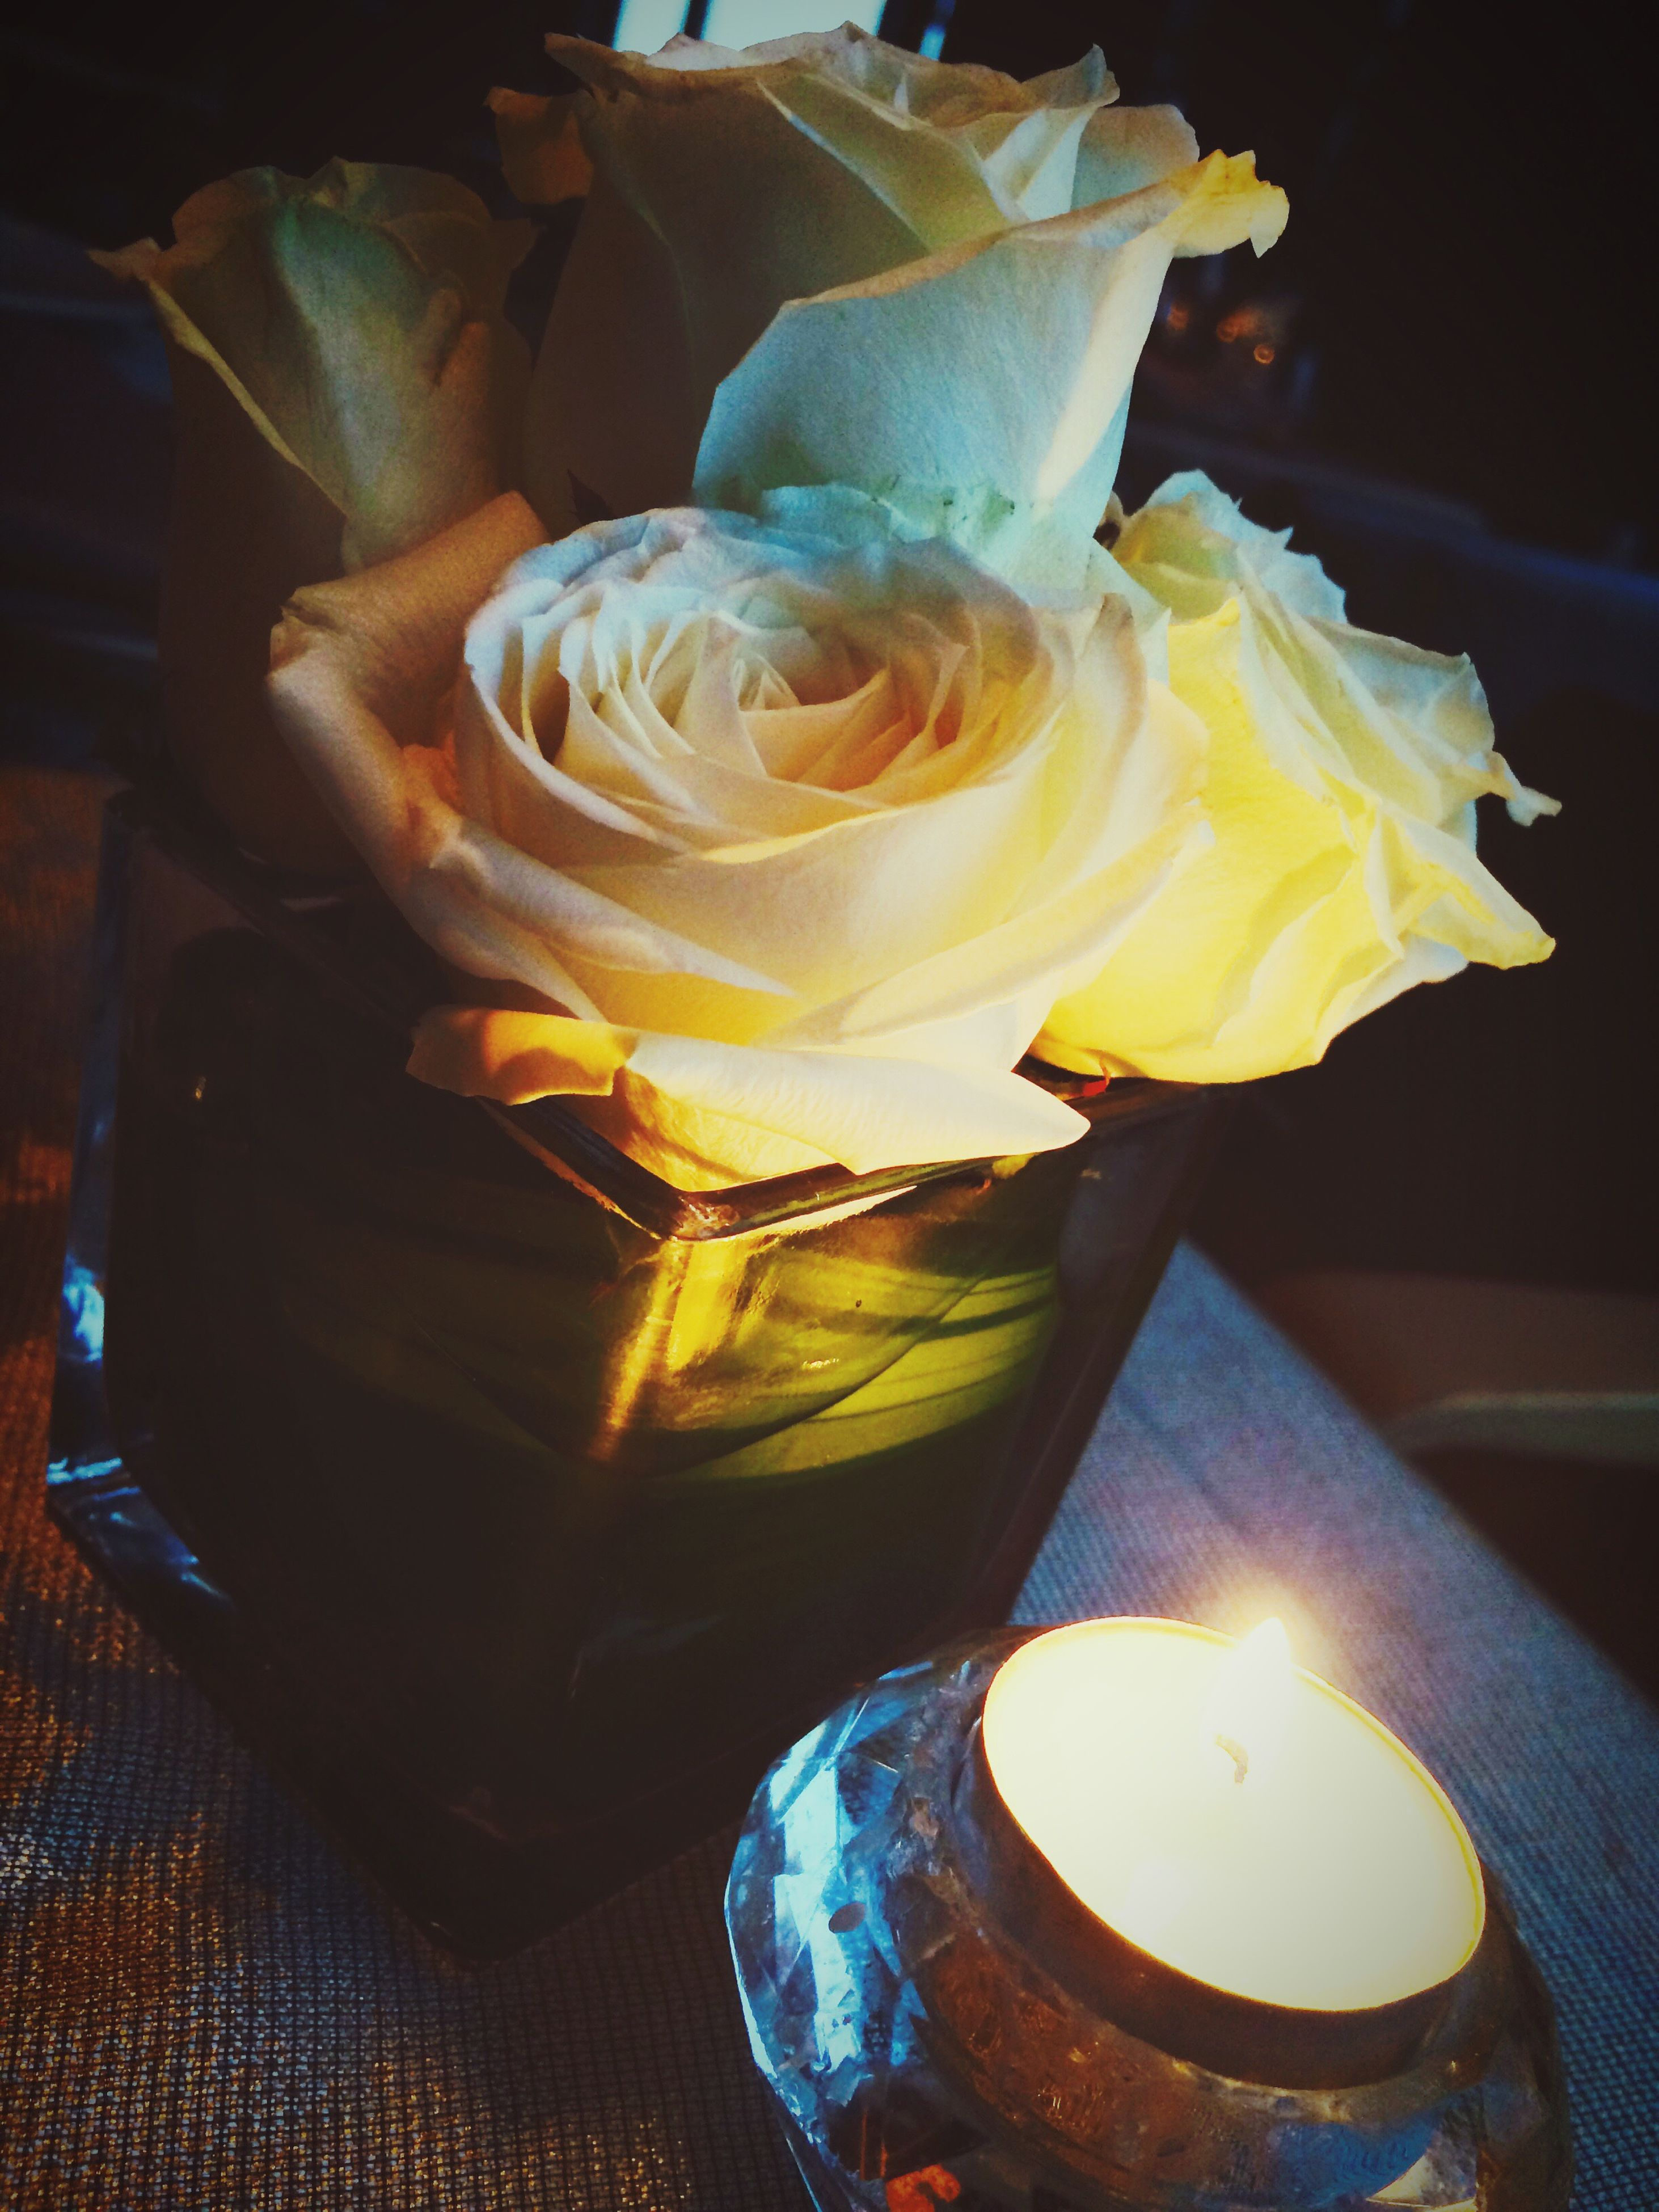 flame, burning, indoors, yellow, close-up, fire - natural phenomenon, illuminated, flower, candle, heat - temperature, freshness, orange color, glowing, still life, no people, table, glass - material, night, focus on foreground, decoration